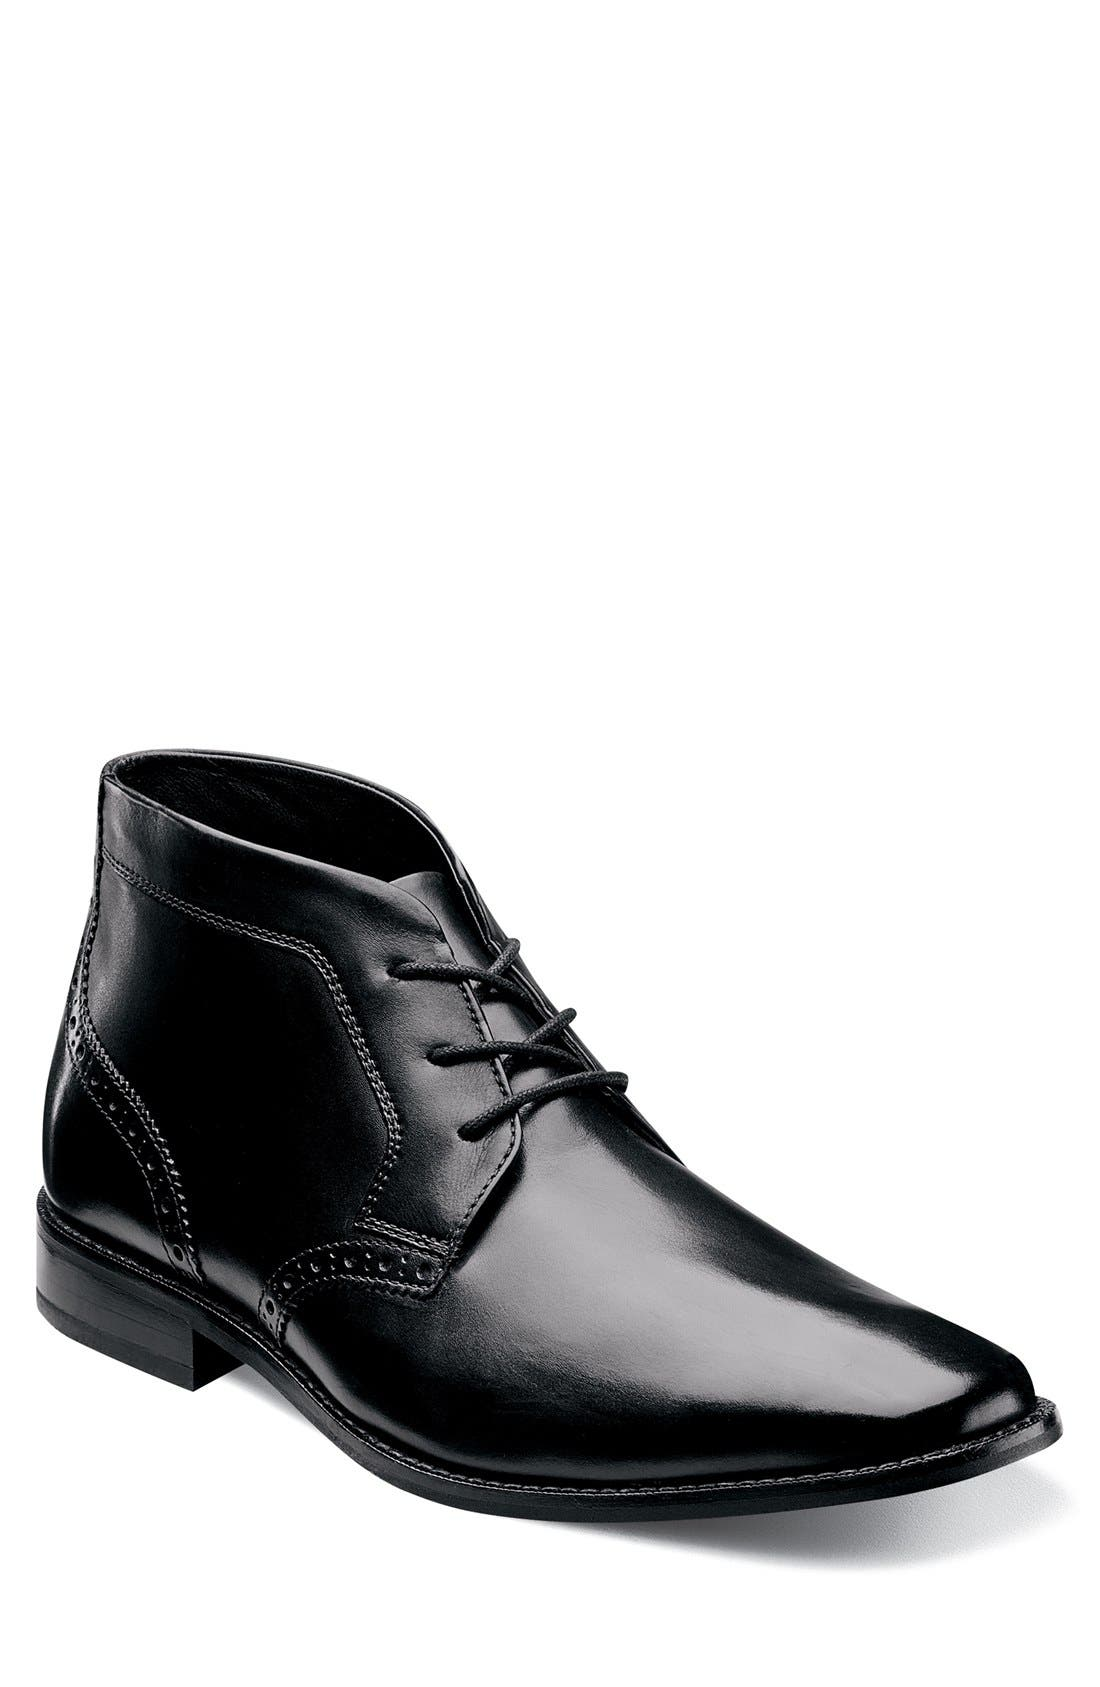 Alternate Image 1 Selected - Florsheim 'Castellano' Chukka Boot (Men)